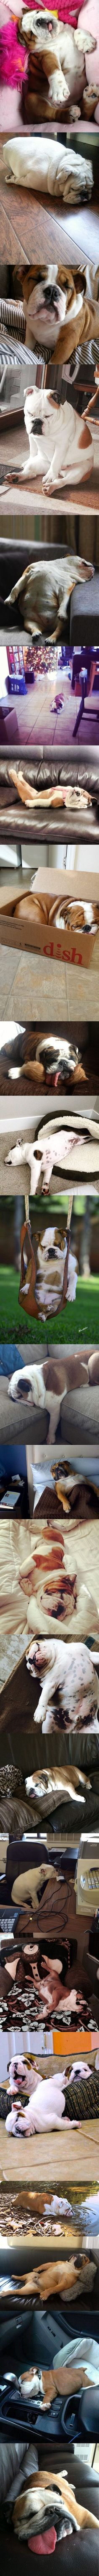 It's official, English Bulldogs can sleep at absolutely any time and anywhere. We challenge you to find a location and time that a #bulldog wouldn't find a way to nap! www.bullymake.com #buldog